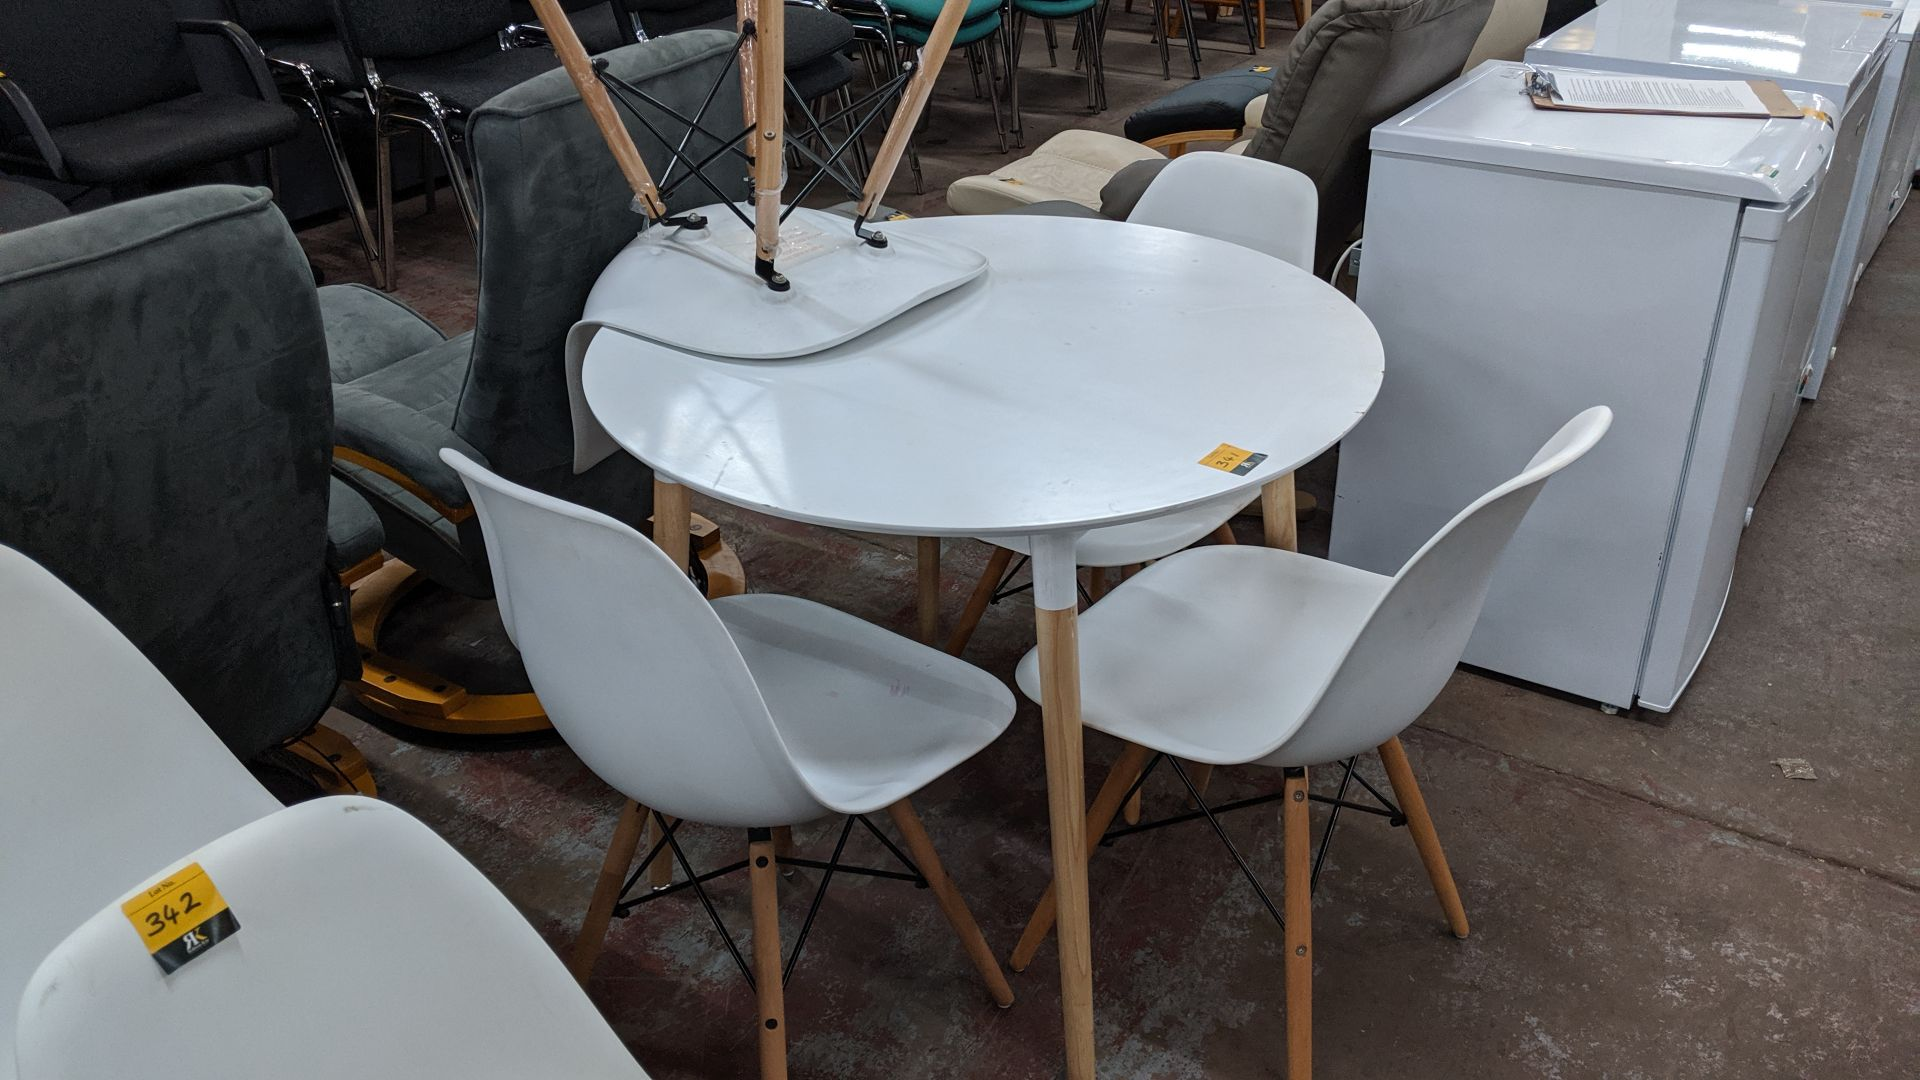 Lot 341 - Small dining suite comprising circular table (90cm diameter) & 4 chairs, all finished in white